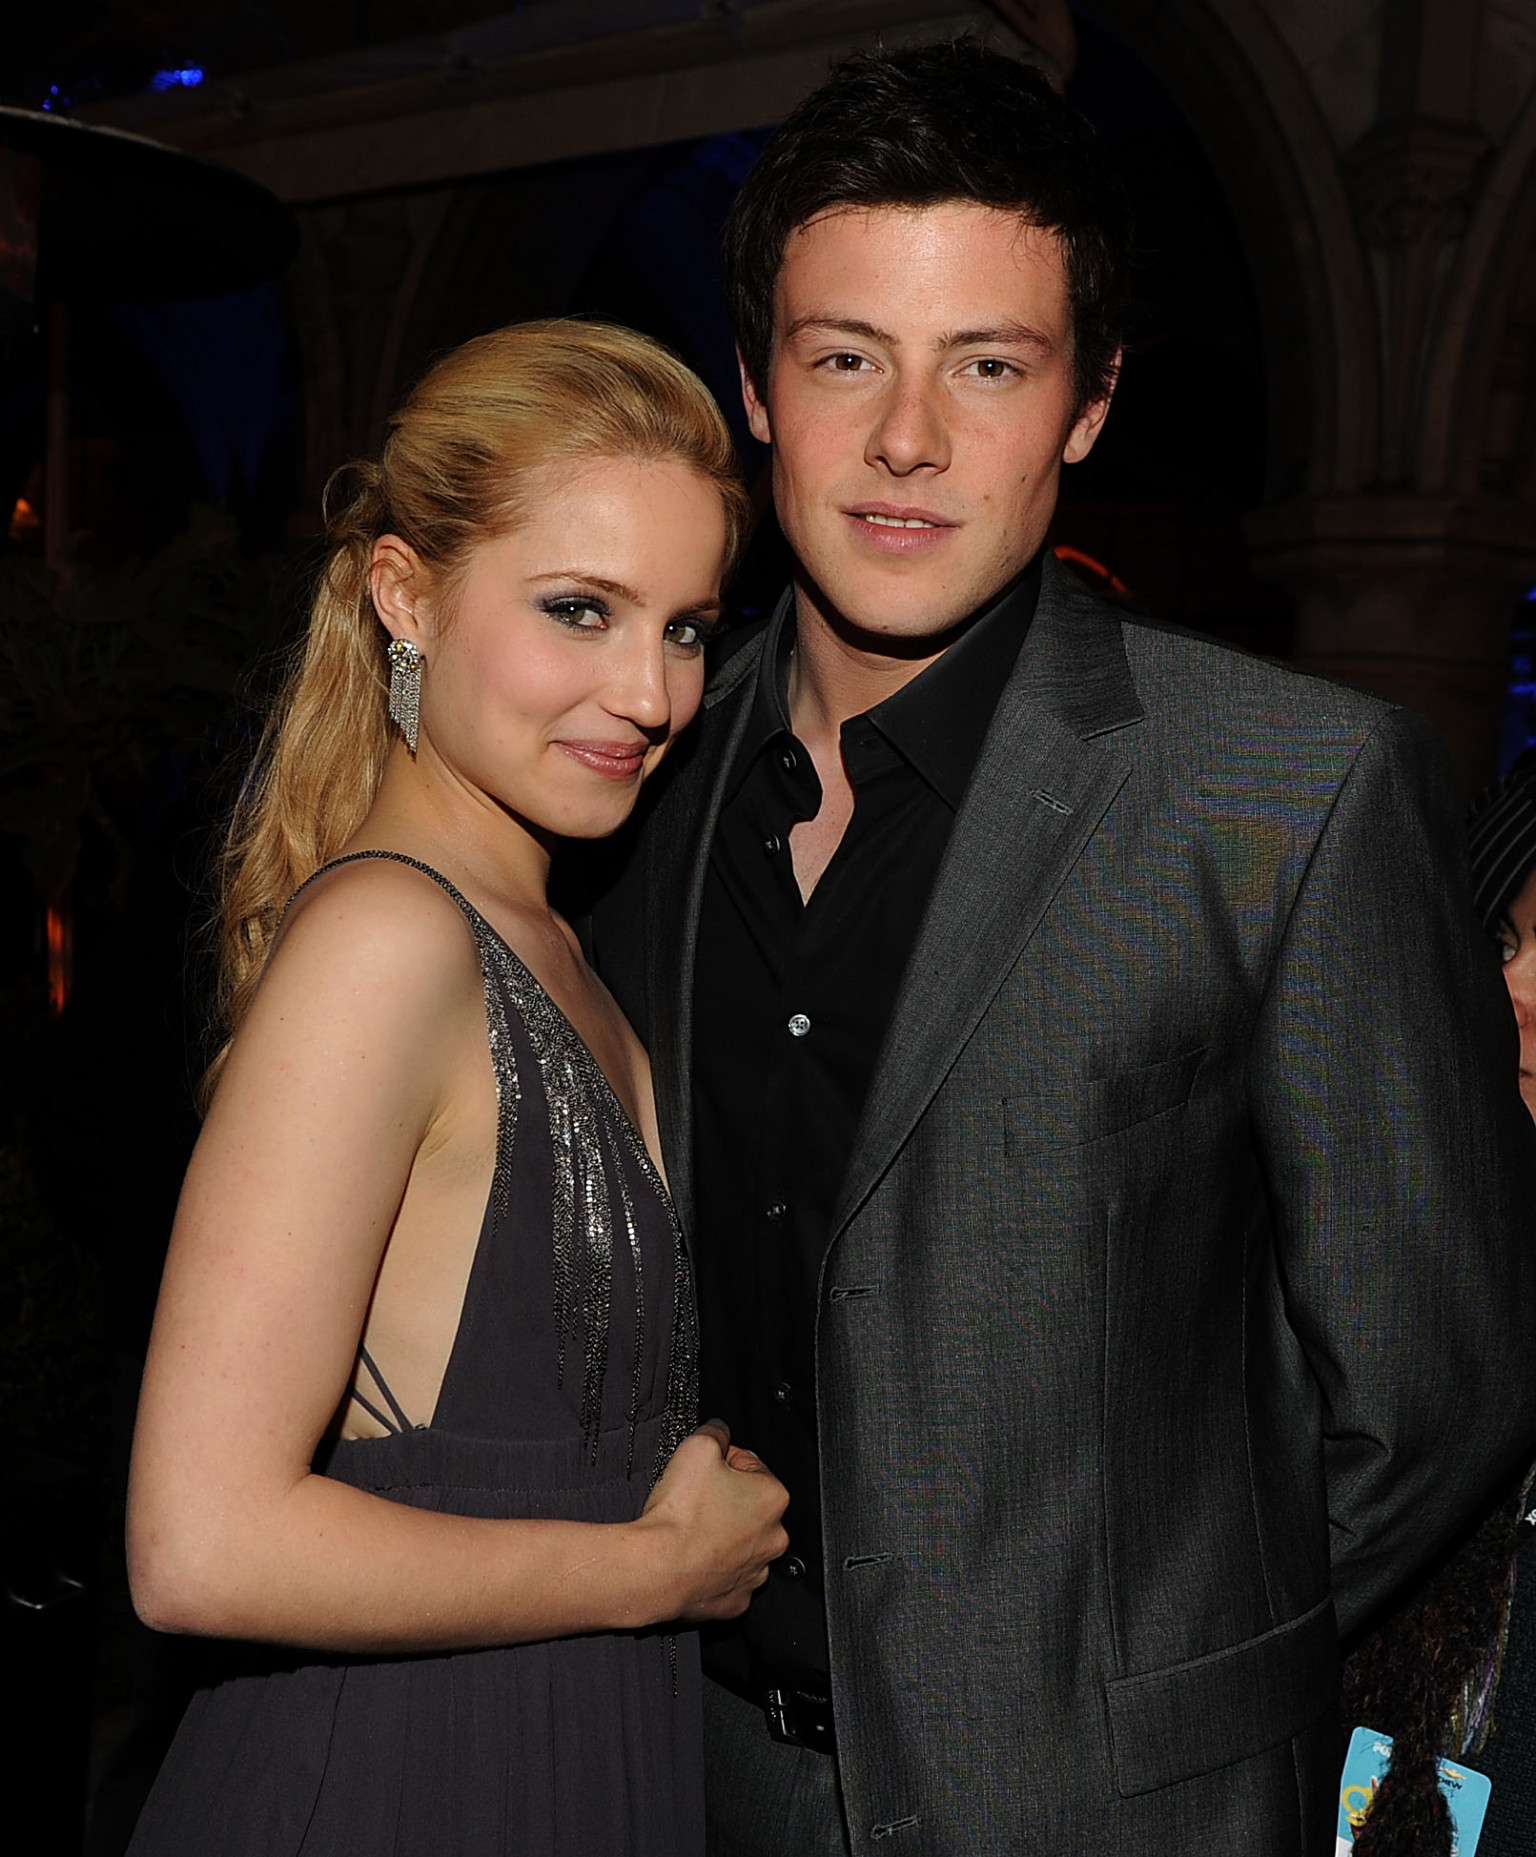 Dianna Agron Remembers Cory Monteith On 'Katie' | HuffPost